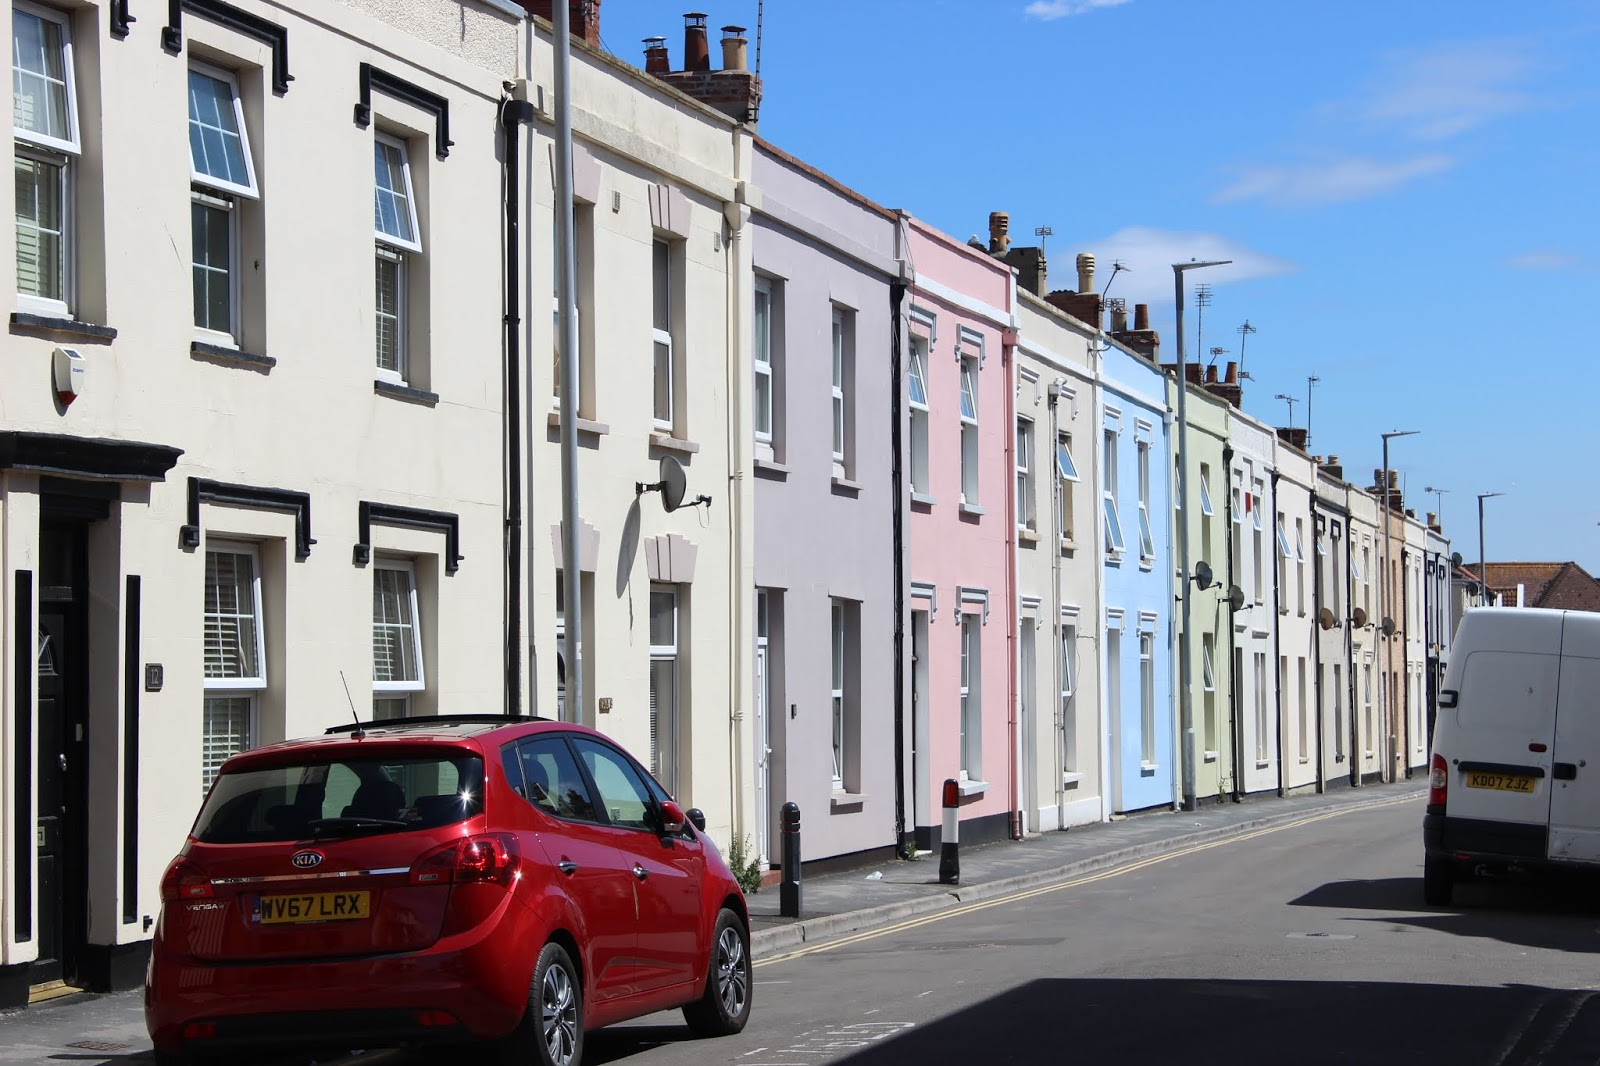 Rainbow coloured houses in Burnham-On-Sea